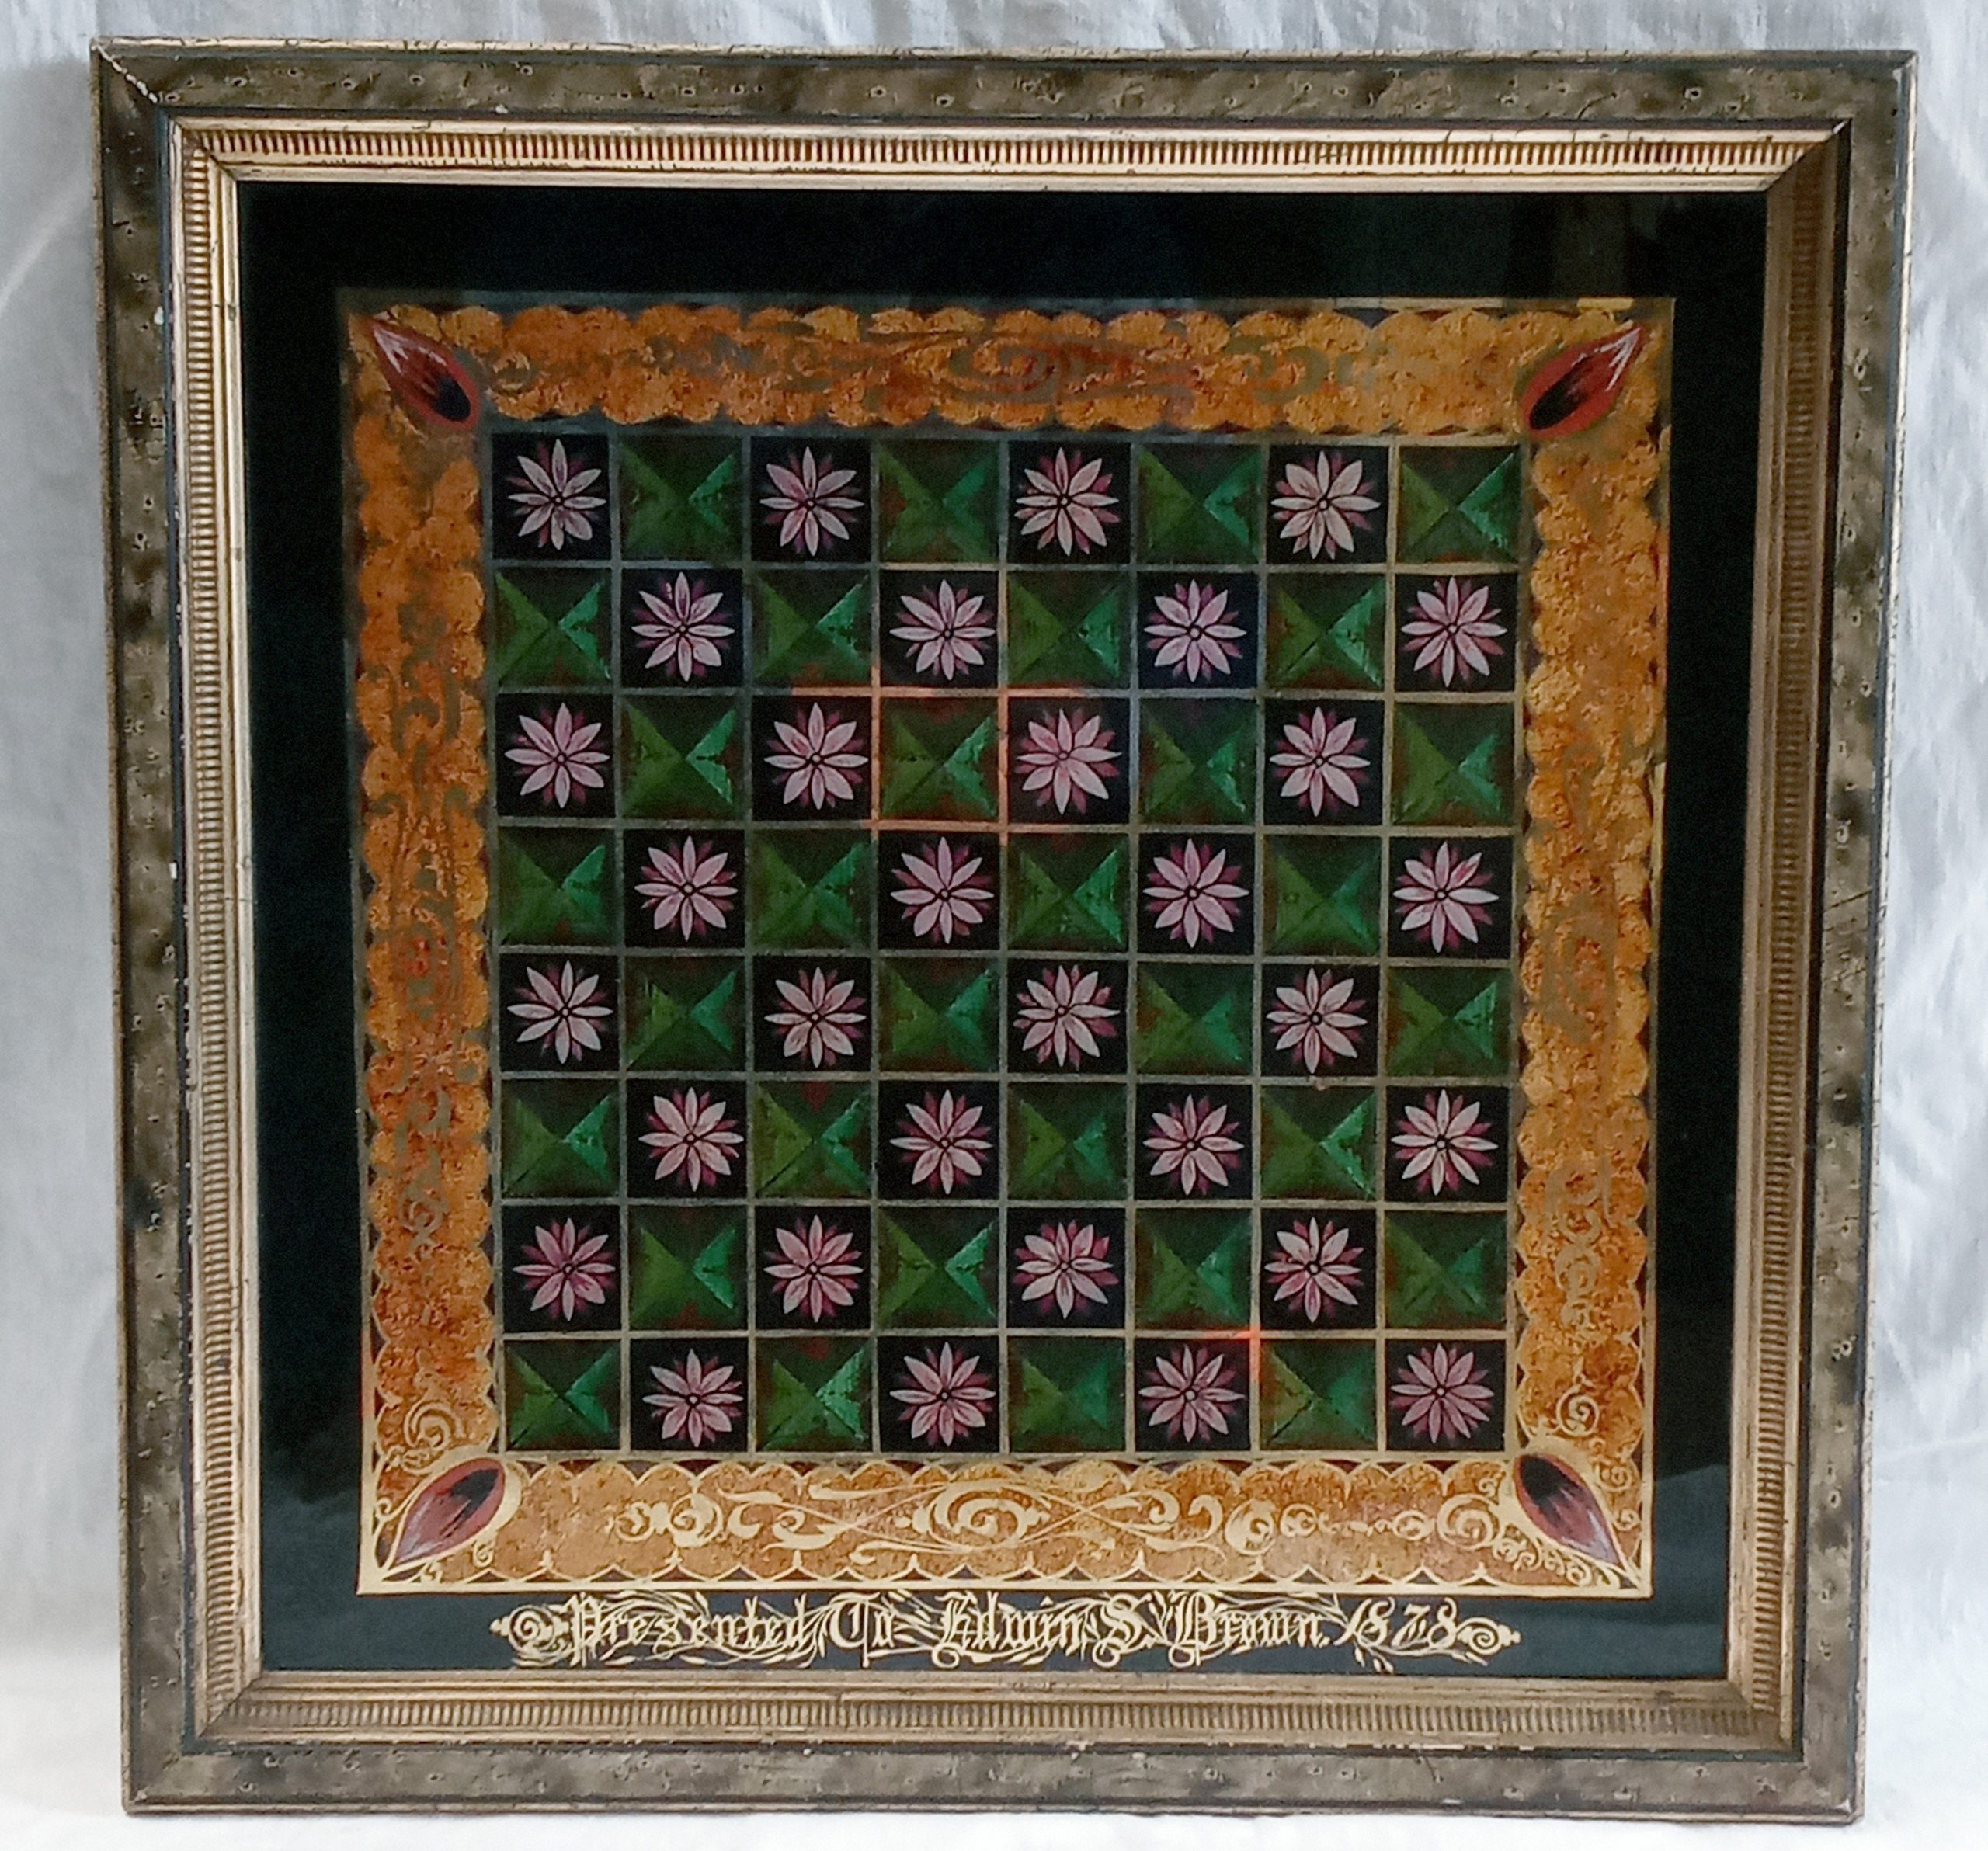 19-33790 Chess Game Board Image